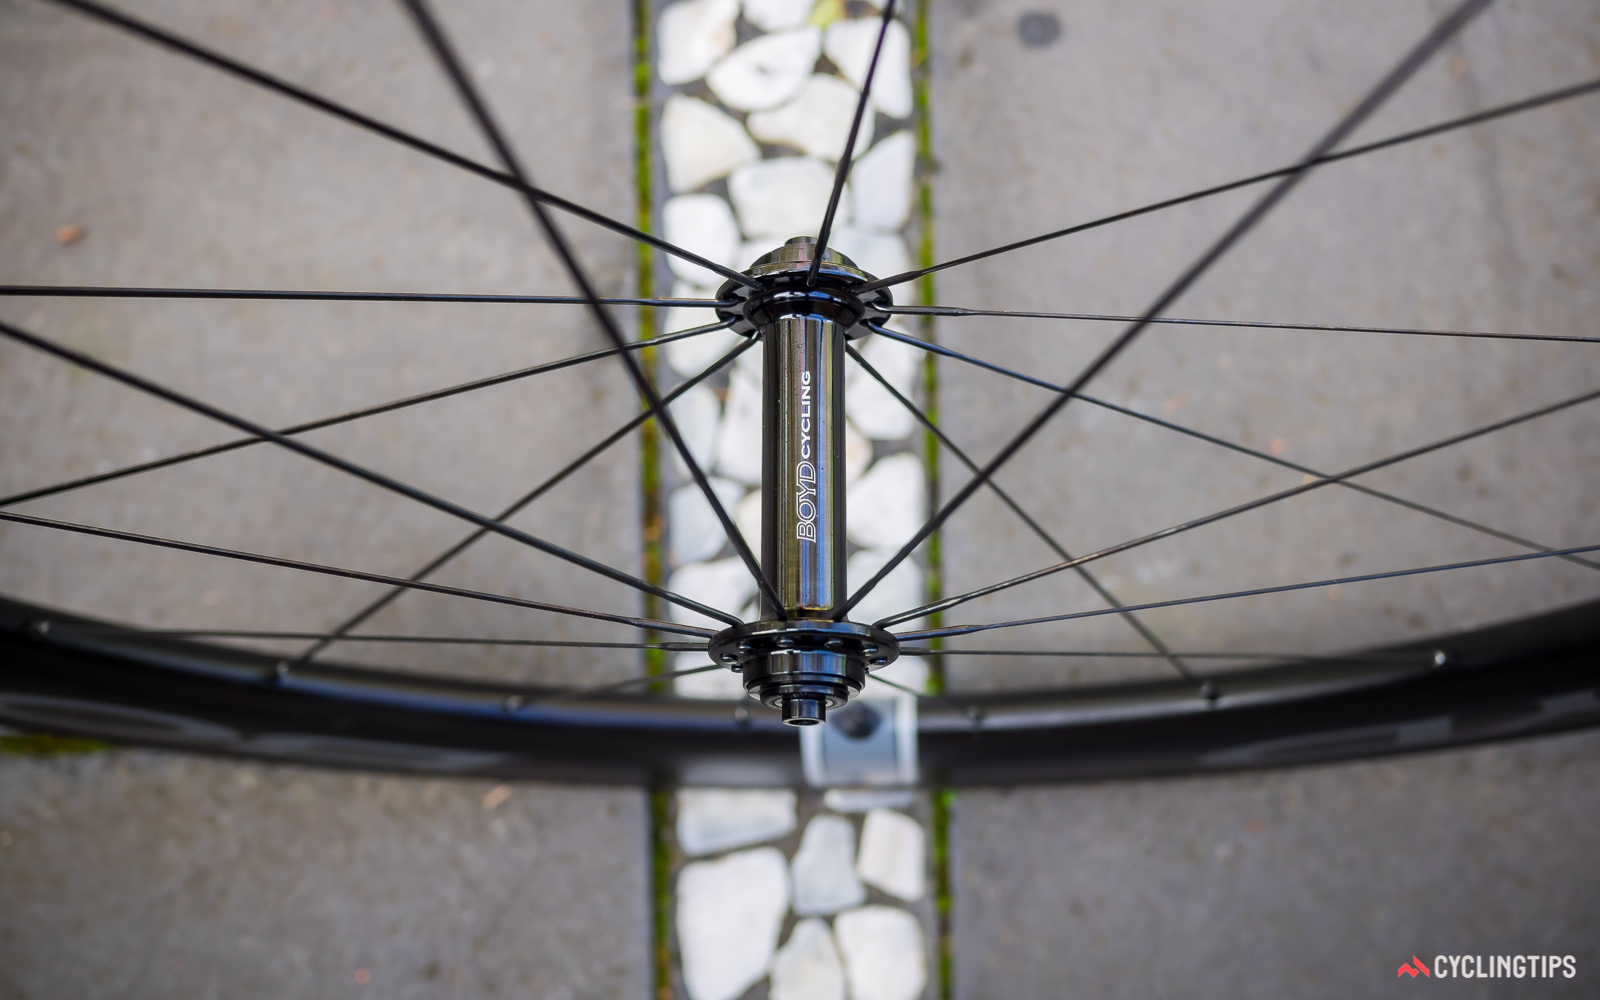 Widely spaced hub flanges add to the lateral stiffness of the front wheel.